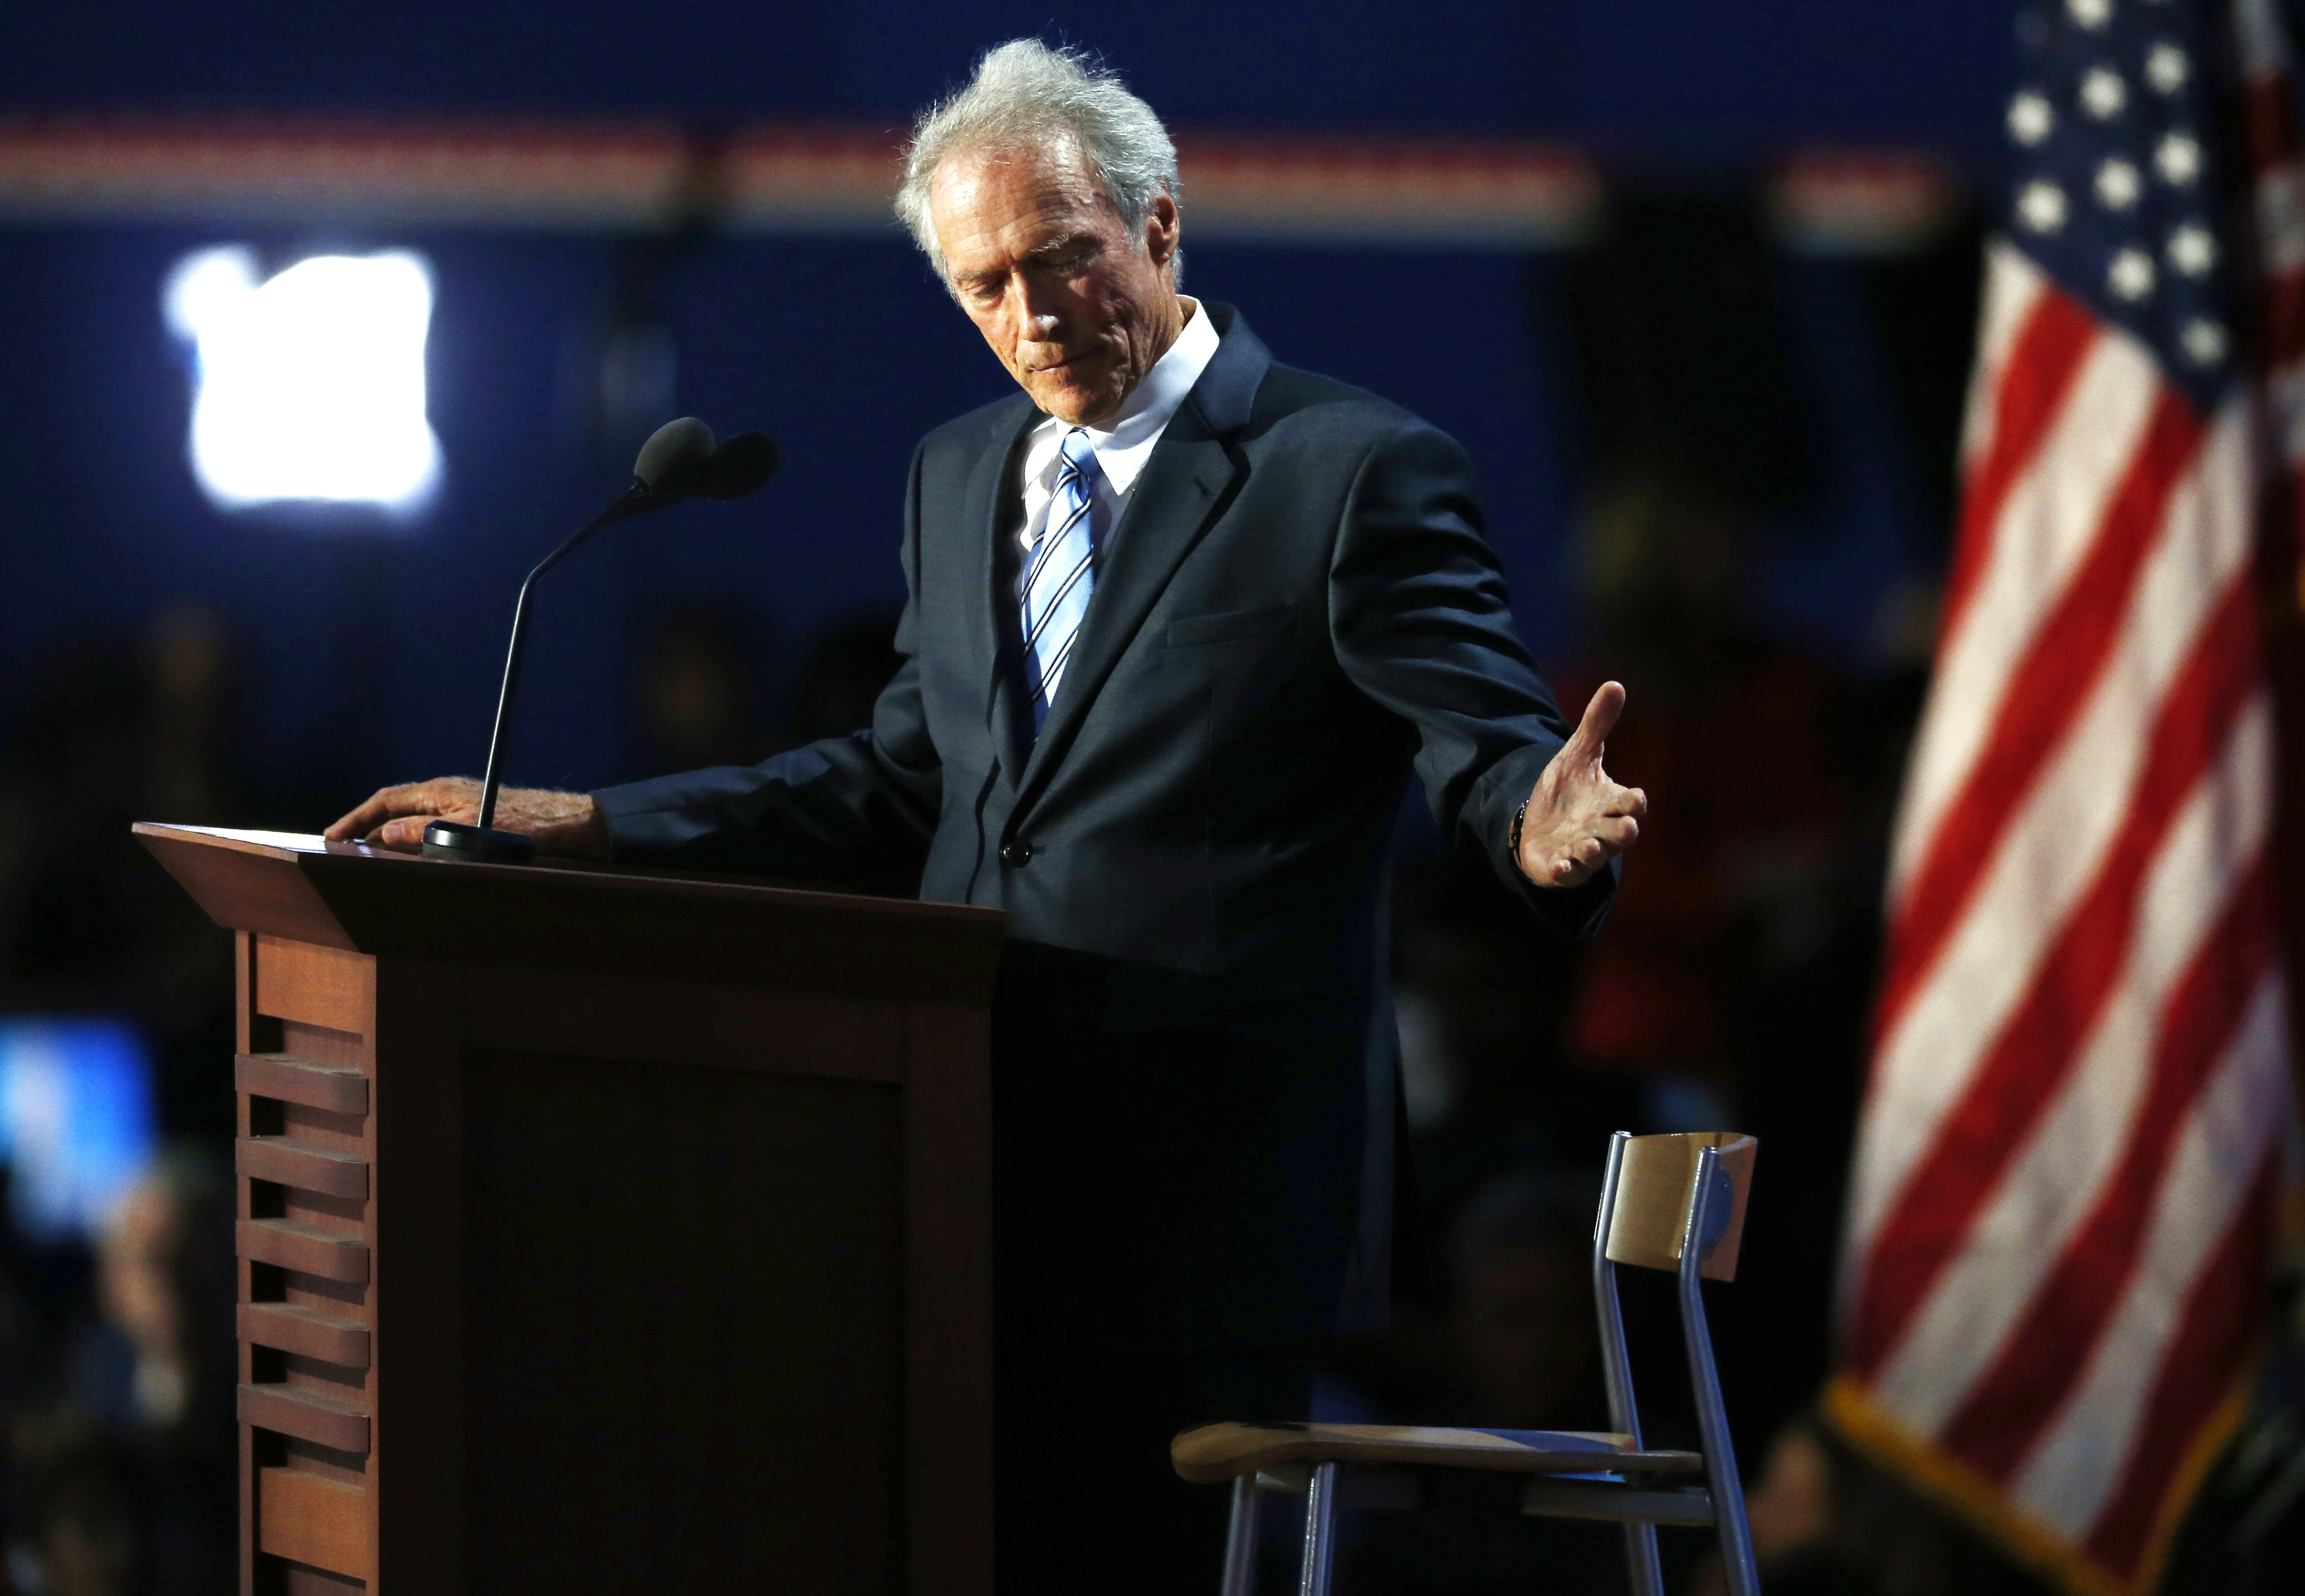 Actor Clint Eastwood addresses an empty chair while speaking during the final session of the Republican National Convention in Tampa